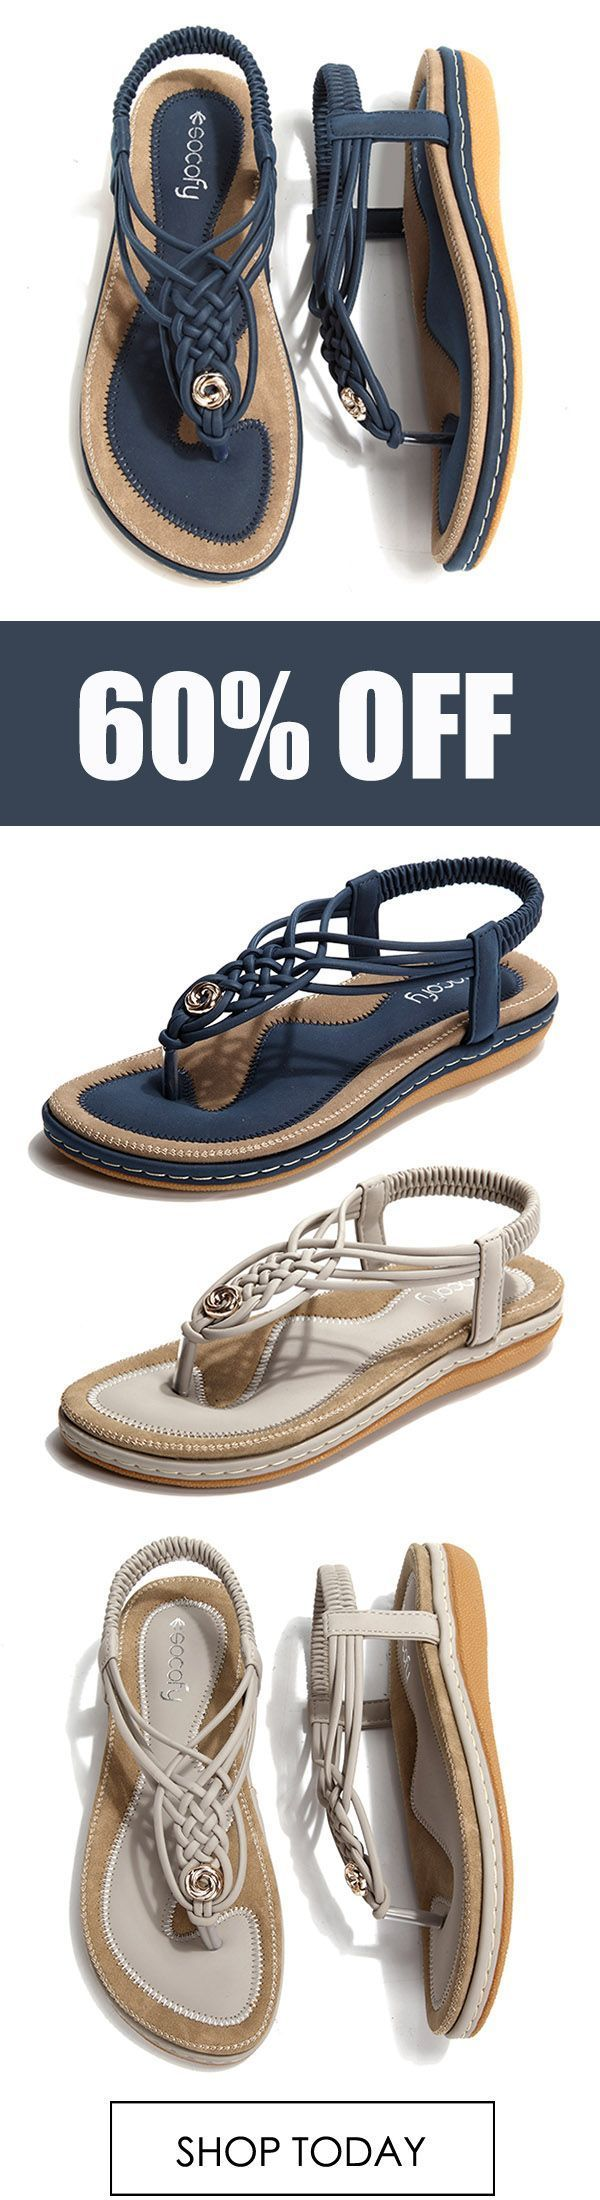 6ab72b169c53 SOCOFY Large Size Women Shoe Knitted Casual Soft Sole Outdoor Beach Sandals.   comfortable  largeshoescasual